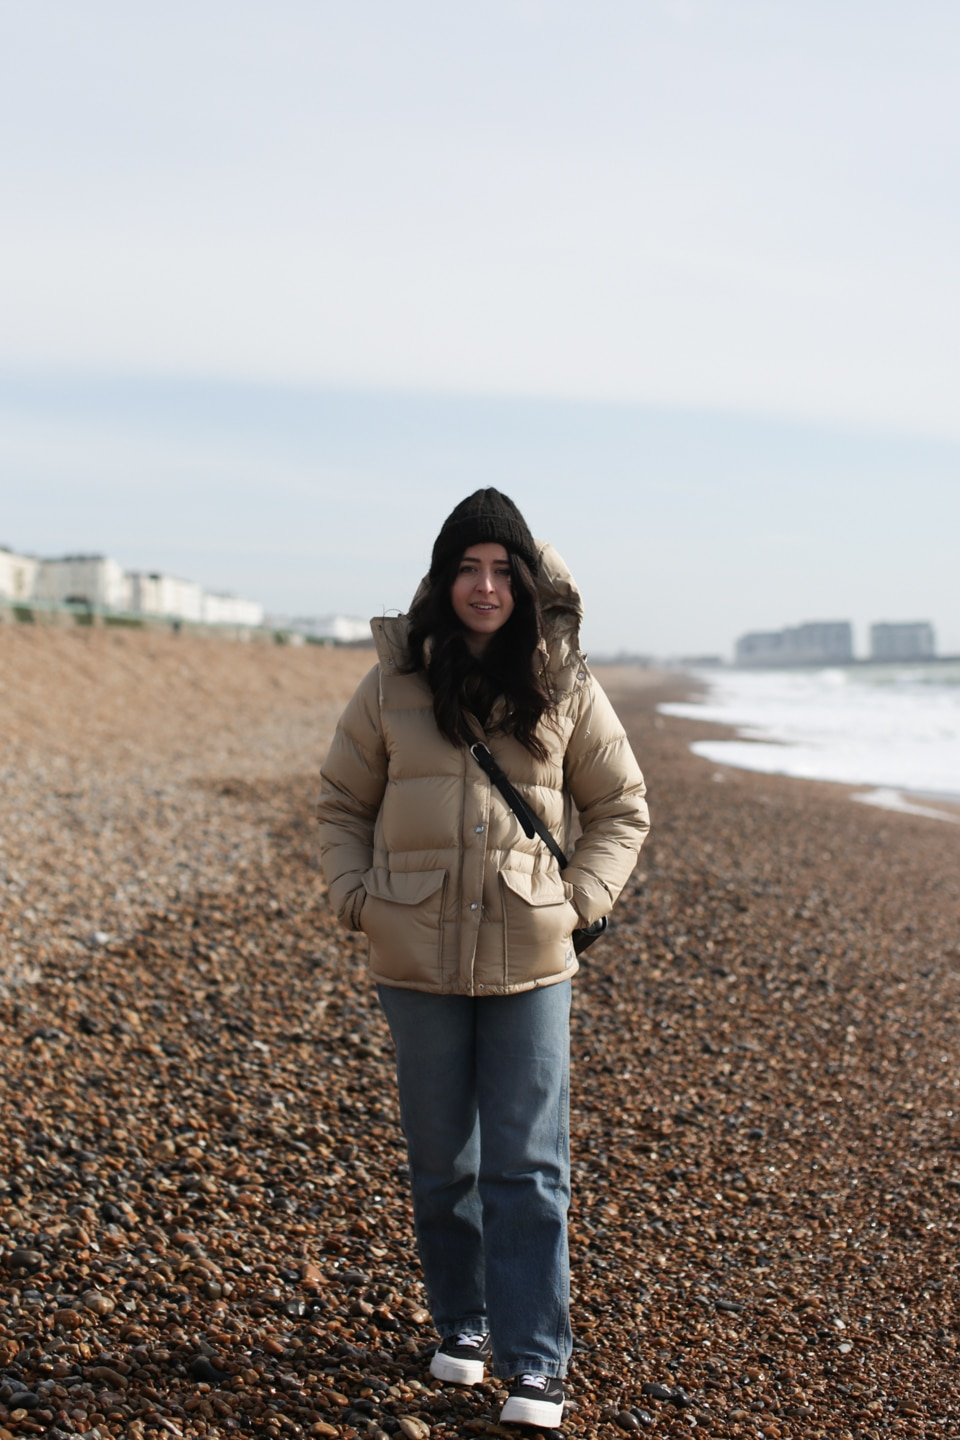 Besma wearing North Face parka with recycled down